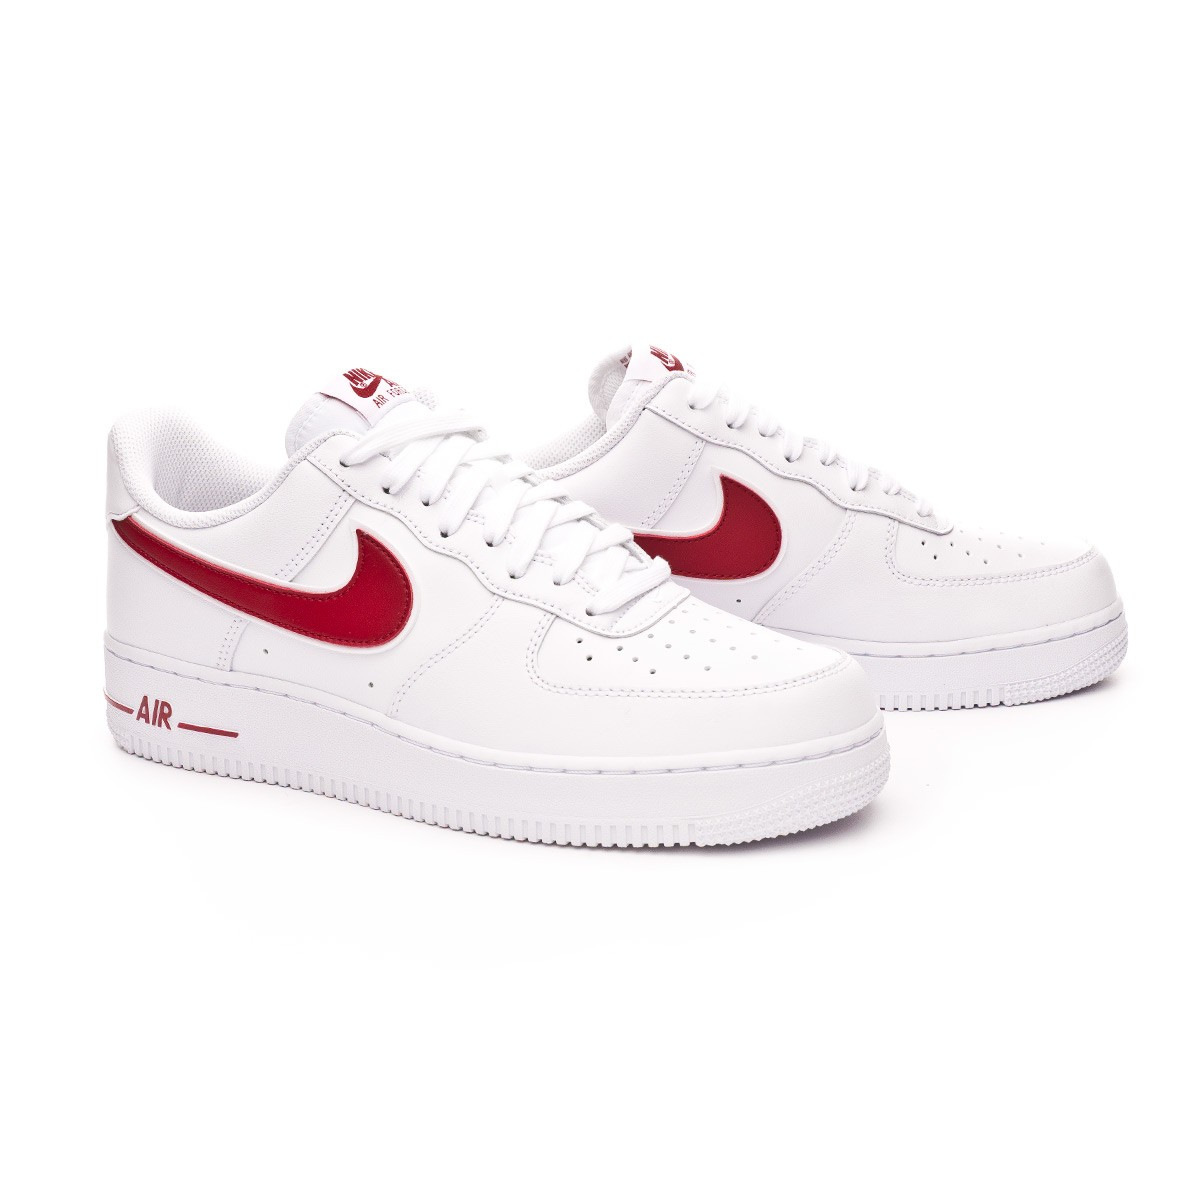 6ad84b5805581 Trainers Nike Air Force 1  07 3 2019 White-Gym red - Football store ...